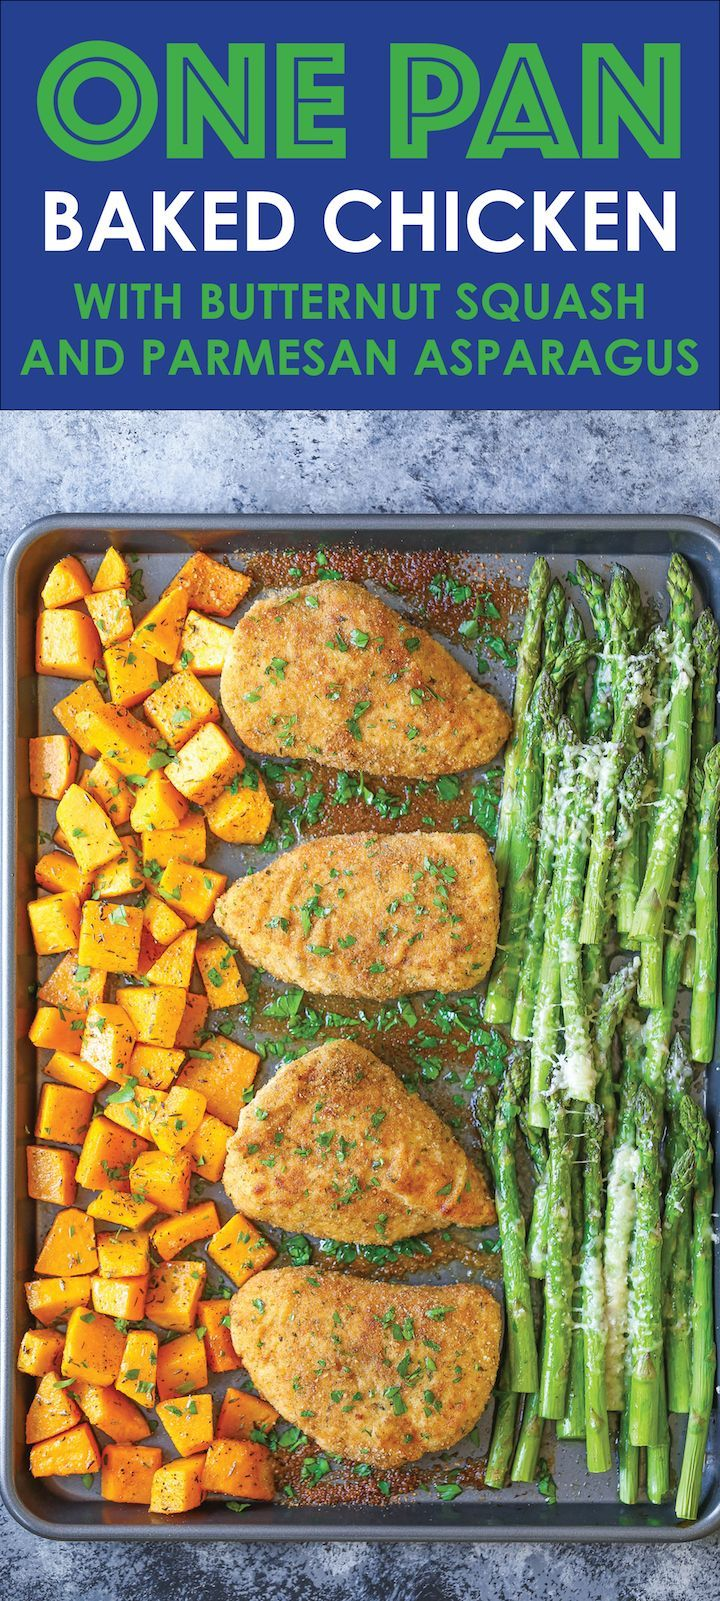 You know those days when you just have no time to cook? Kiss those days goodbye. These sheet pan dinners are going to change the way you do weeknight meals.